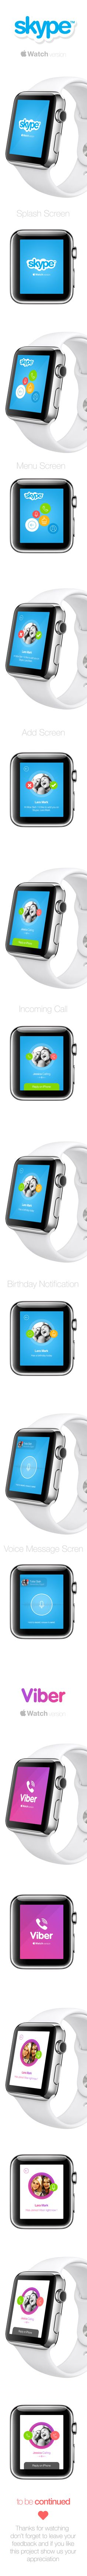 http://www.appdesignserved.co/gallery/Apple-Watch-with-Skype-and-Viber/19824643